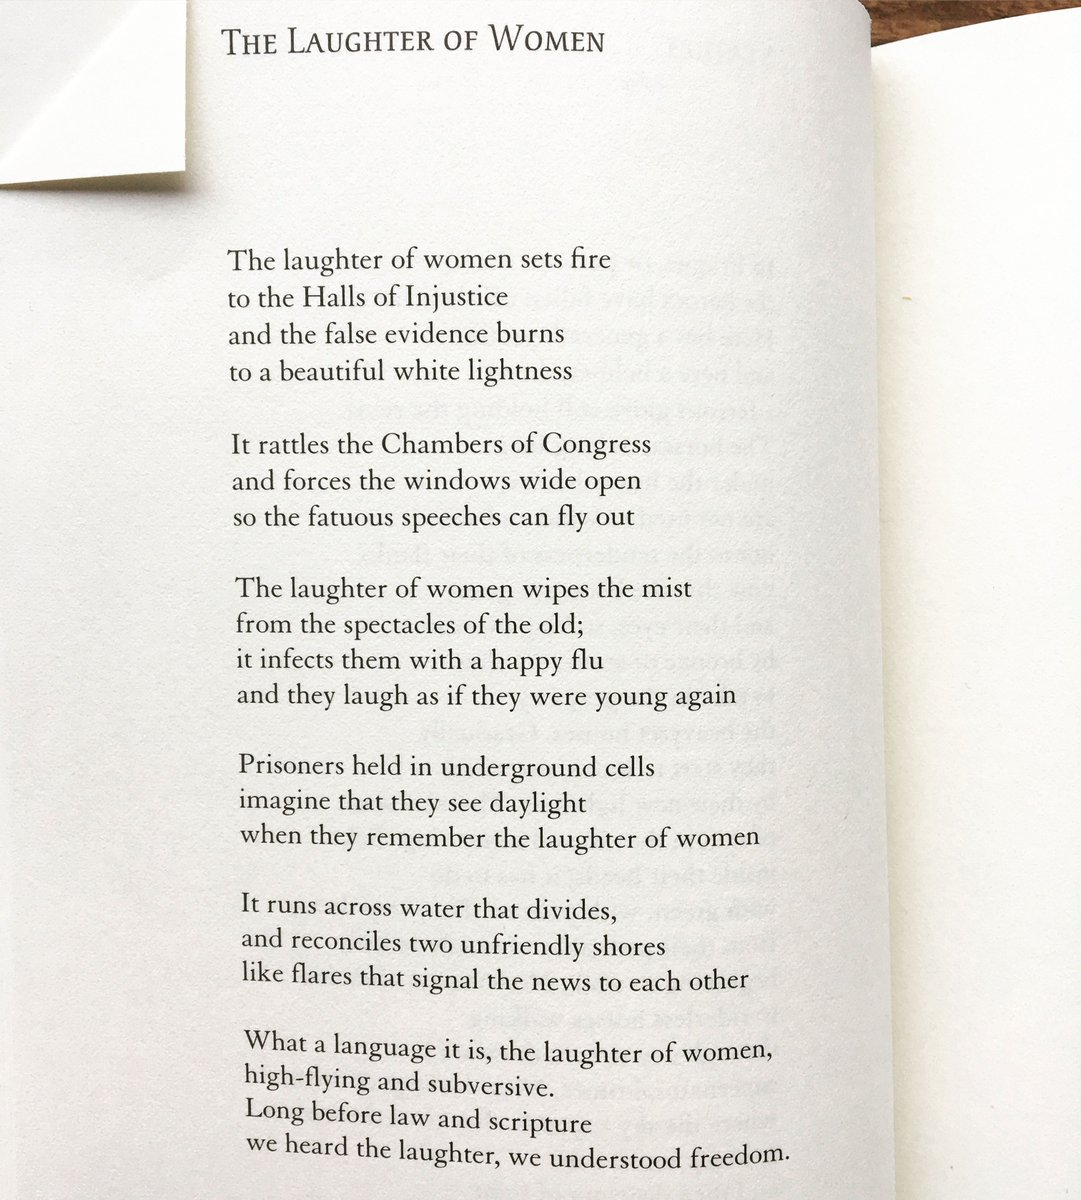 For #InternationalWomensDay, this gift of a poem by Lisel Mueller